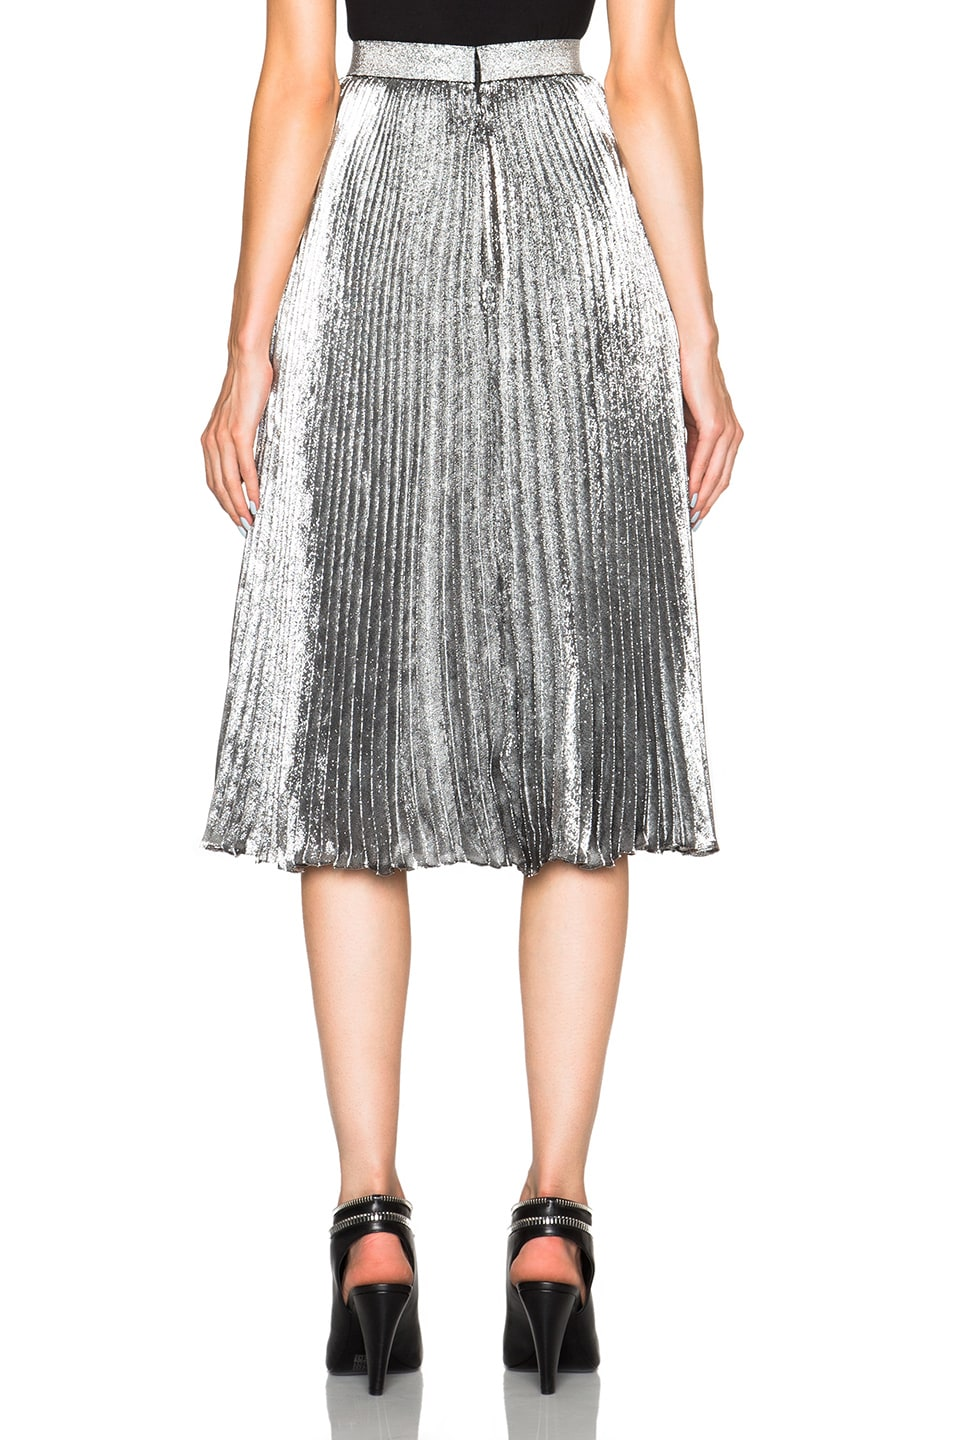 christopher lame pleated skirt in silver fwrd